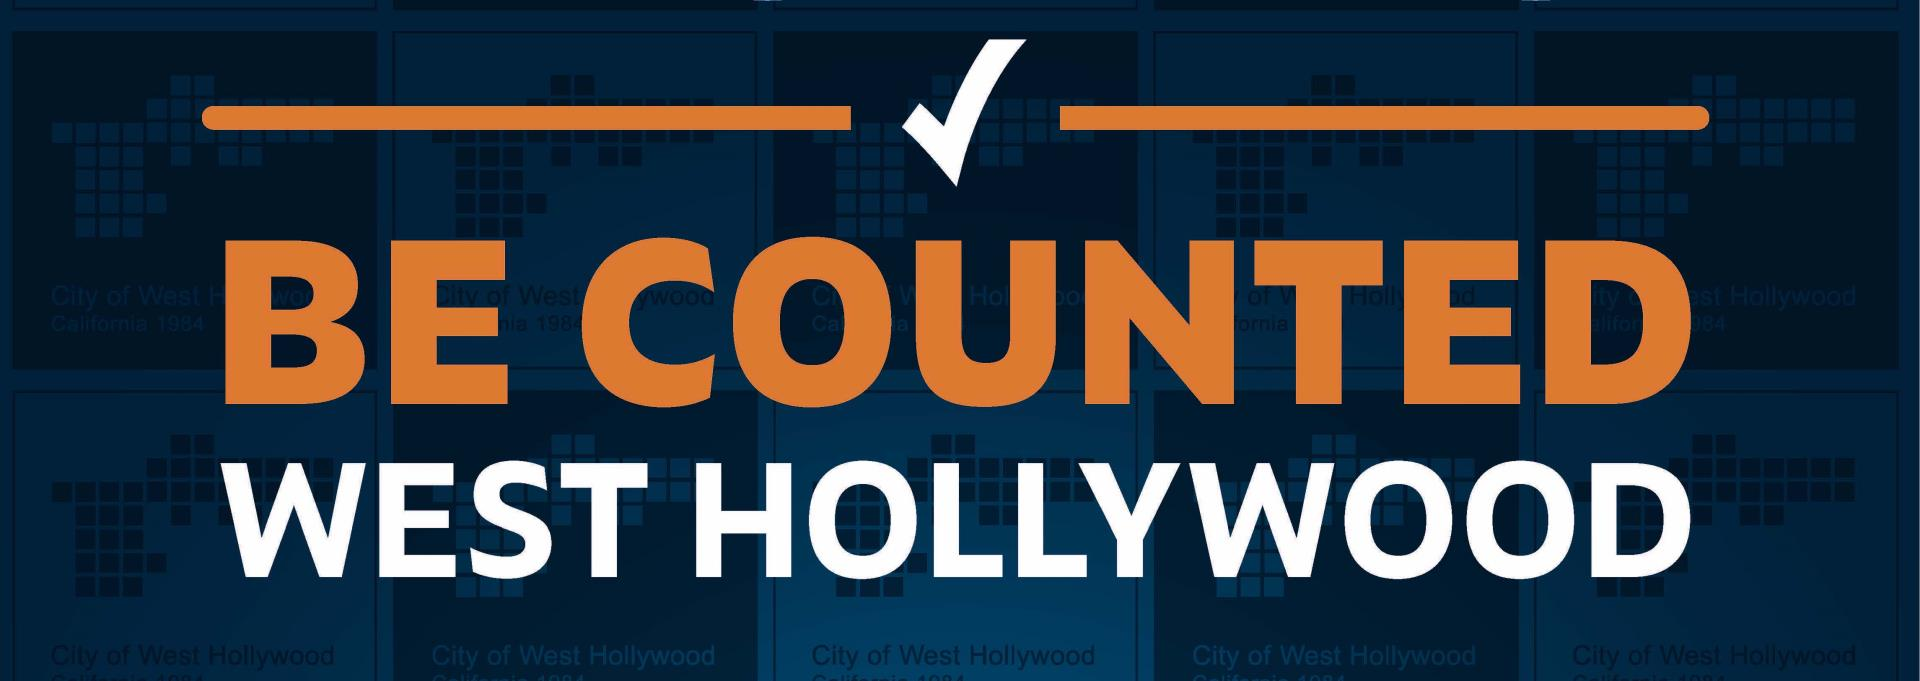 City Launches Census 2020 Campaign: 'Be Counted West Hollywood'